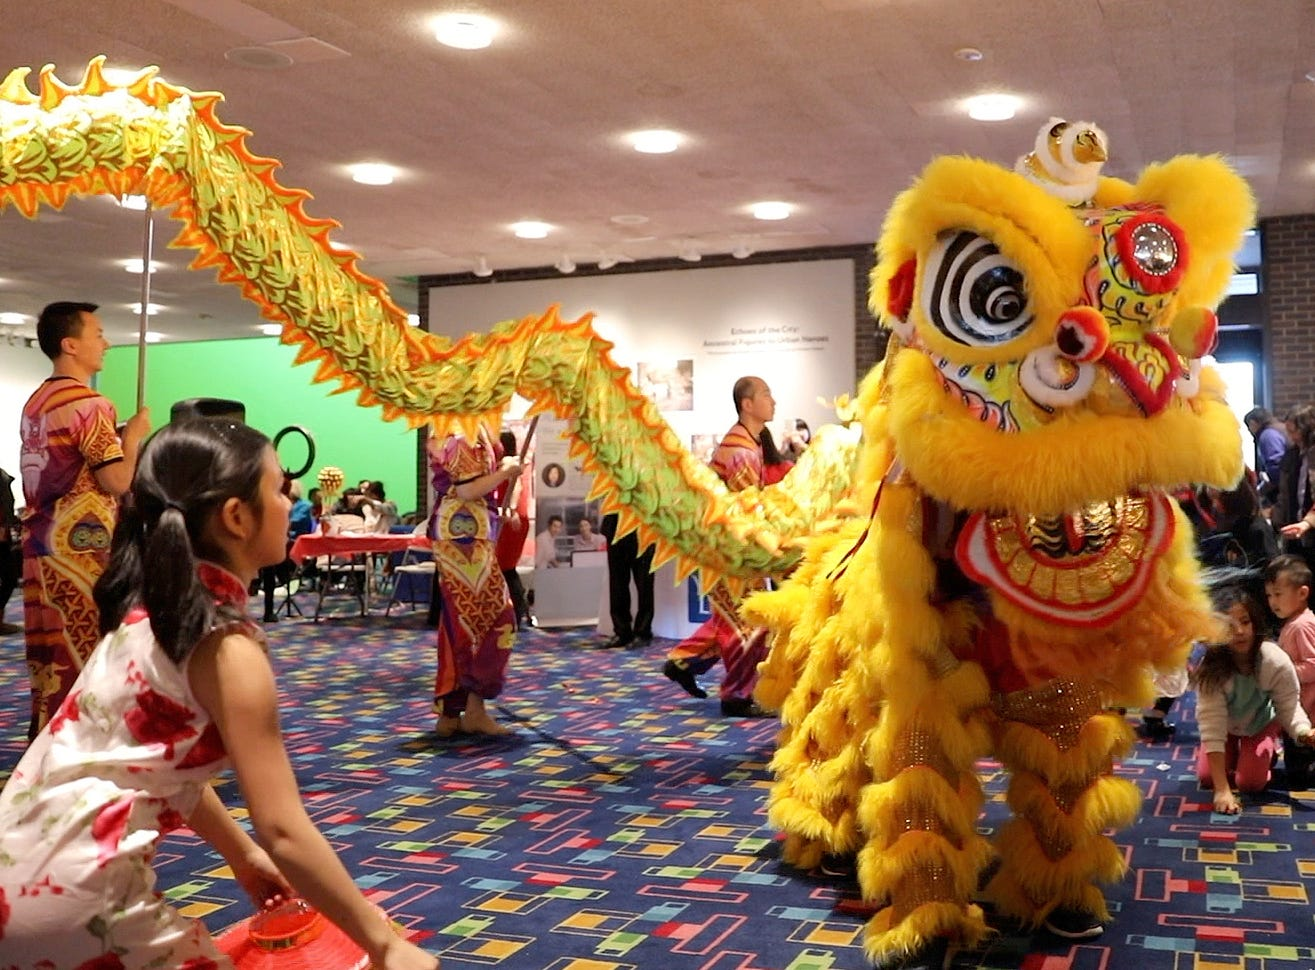 The Lion Dance makes it's way through the crowd, during the 30th Chinese New Year Festival, the Year of the Pig, sponsored by WACA (Westchester Association of Chinese Americans), at The Performing Arts Center at Purchase College SUNY, Feb. 9, 2019.